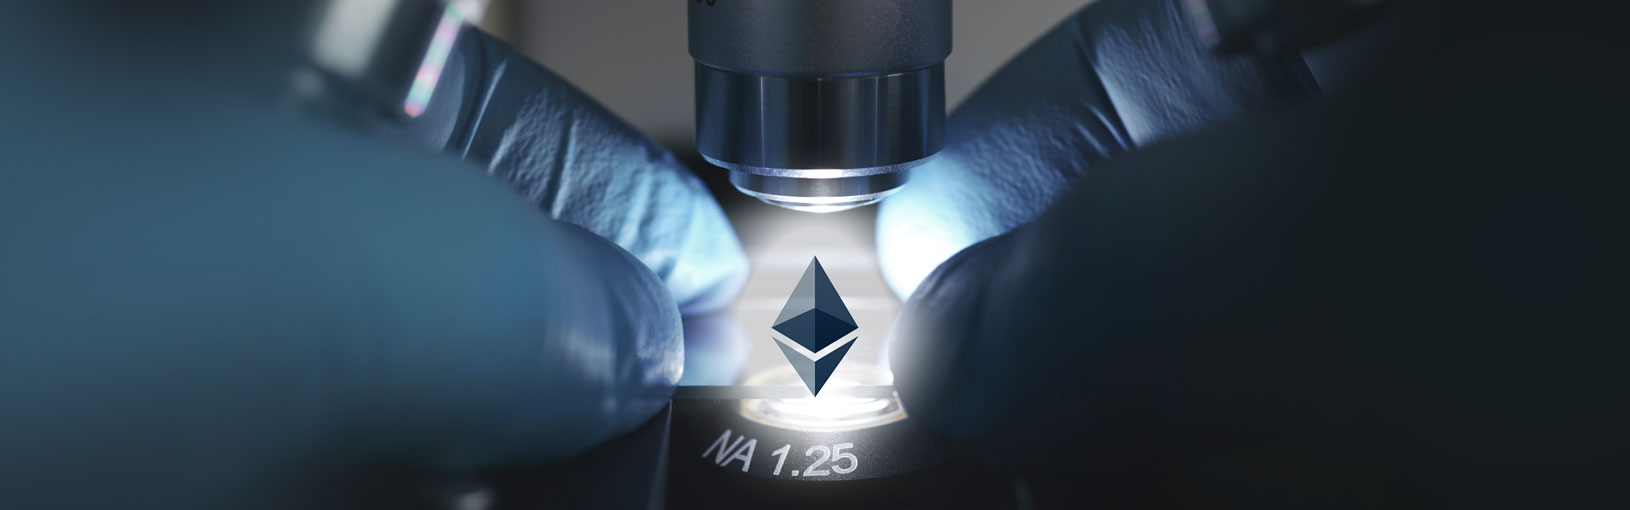 Ethereum: Görli testnet ready for experimentation » Brave